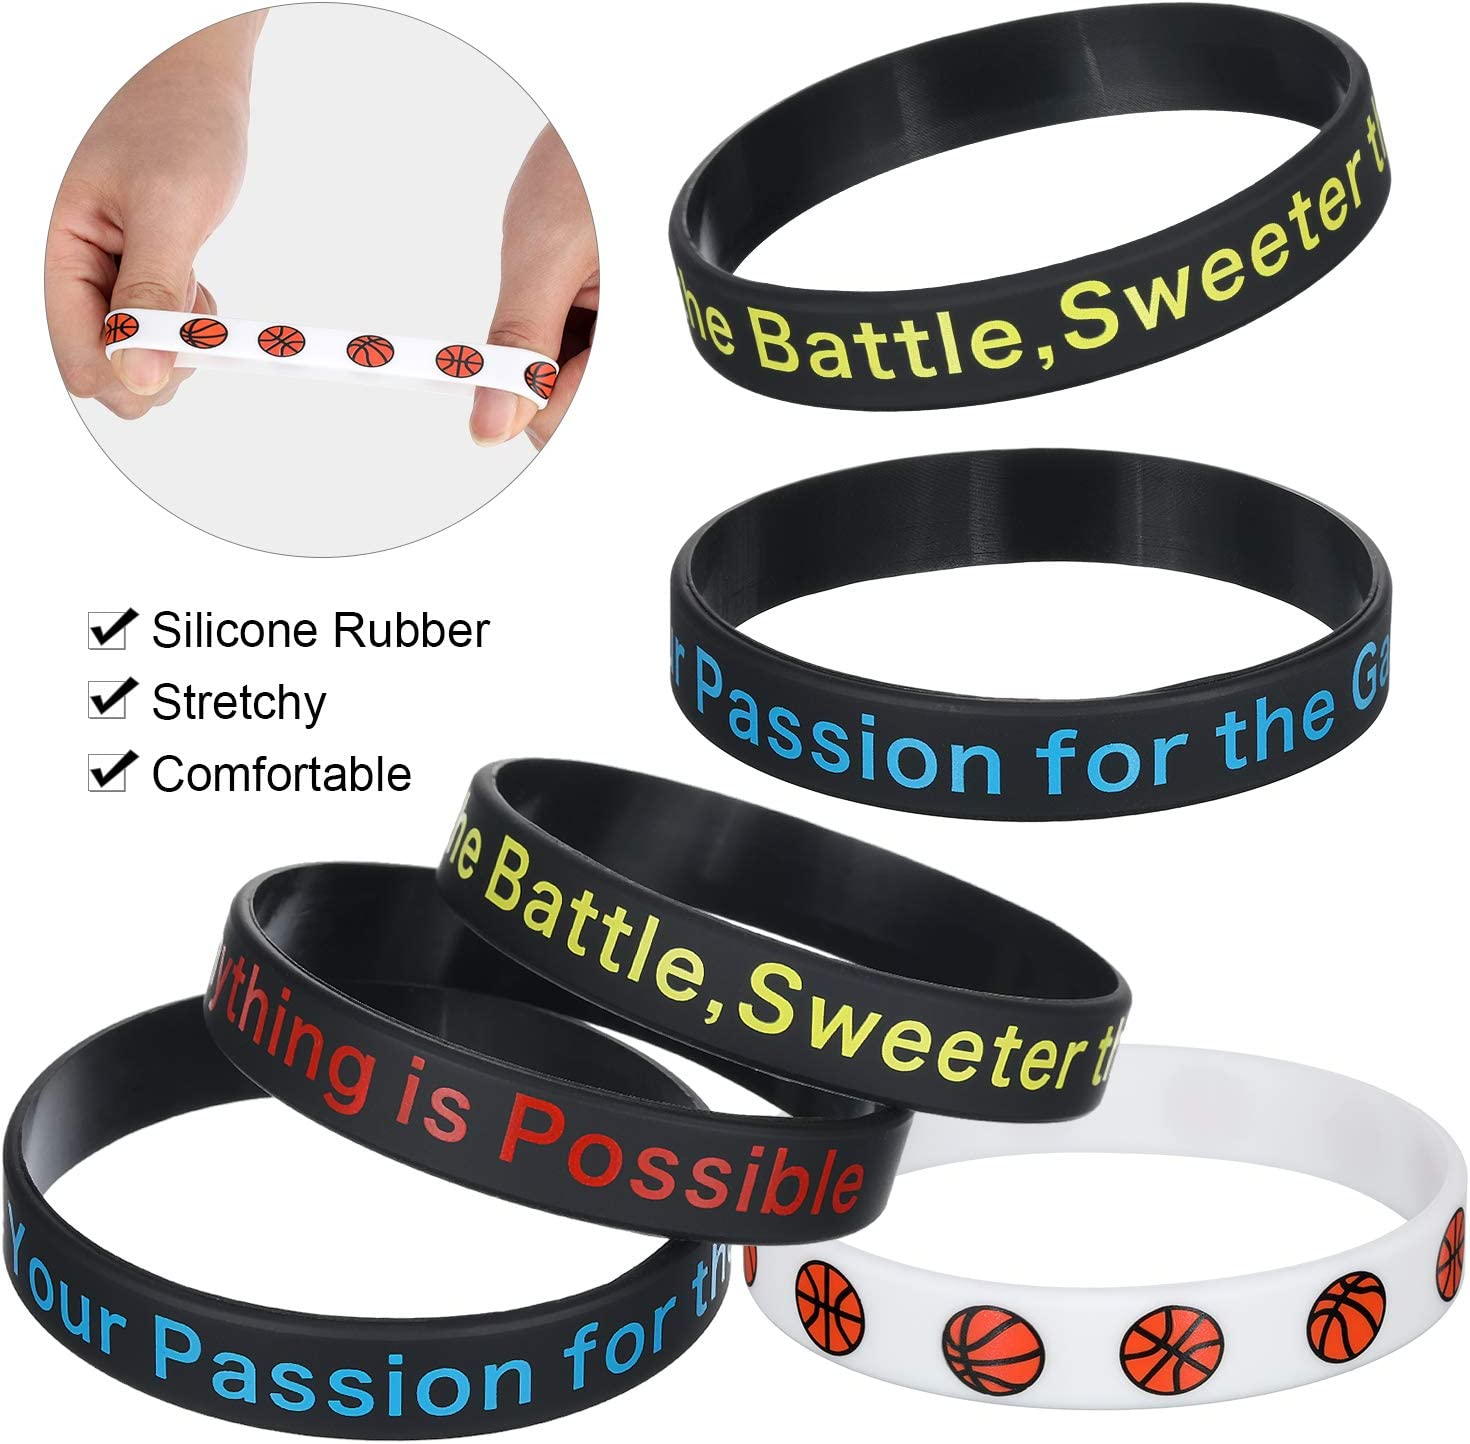 Softball Gejoy 36 Pieces Sports Ball Inspirational Silicone Wristbands Stretch Motivational Bracelets Ball Rubber Bands with Motivational Message for Sport Theme Party Supplies